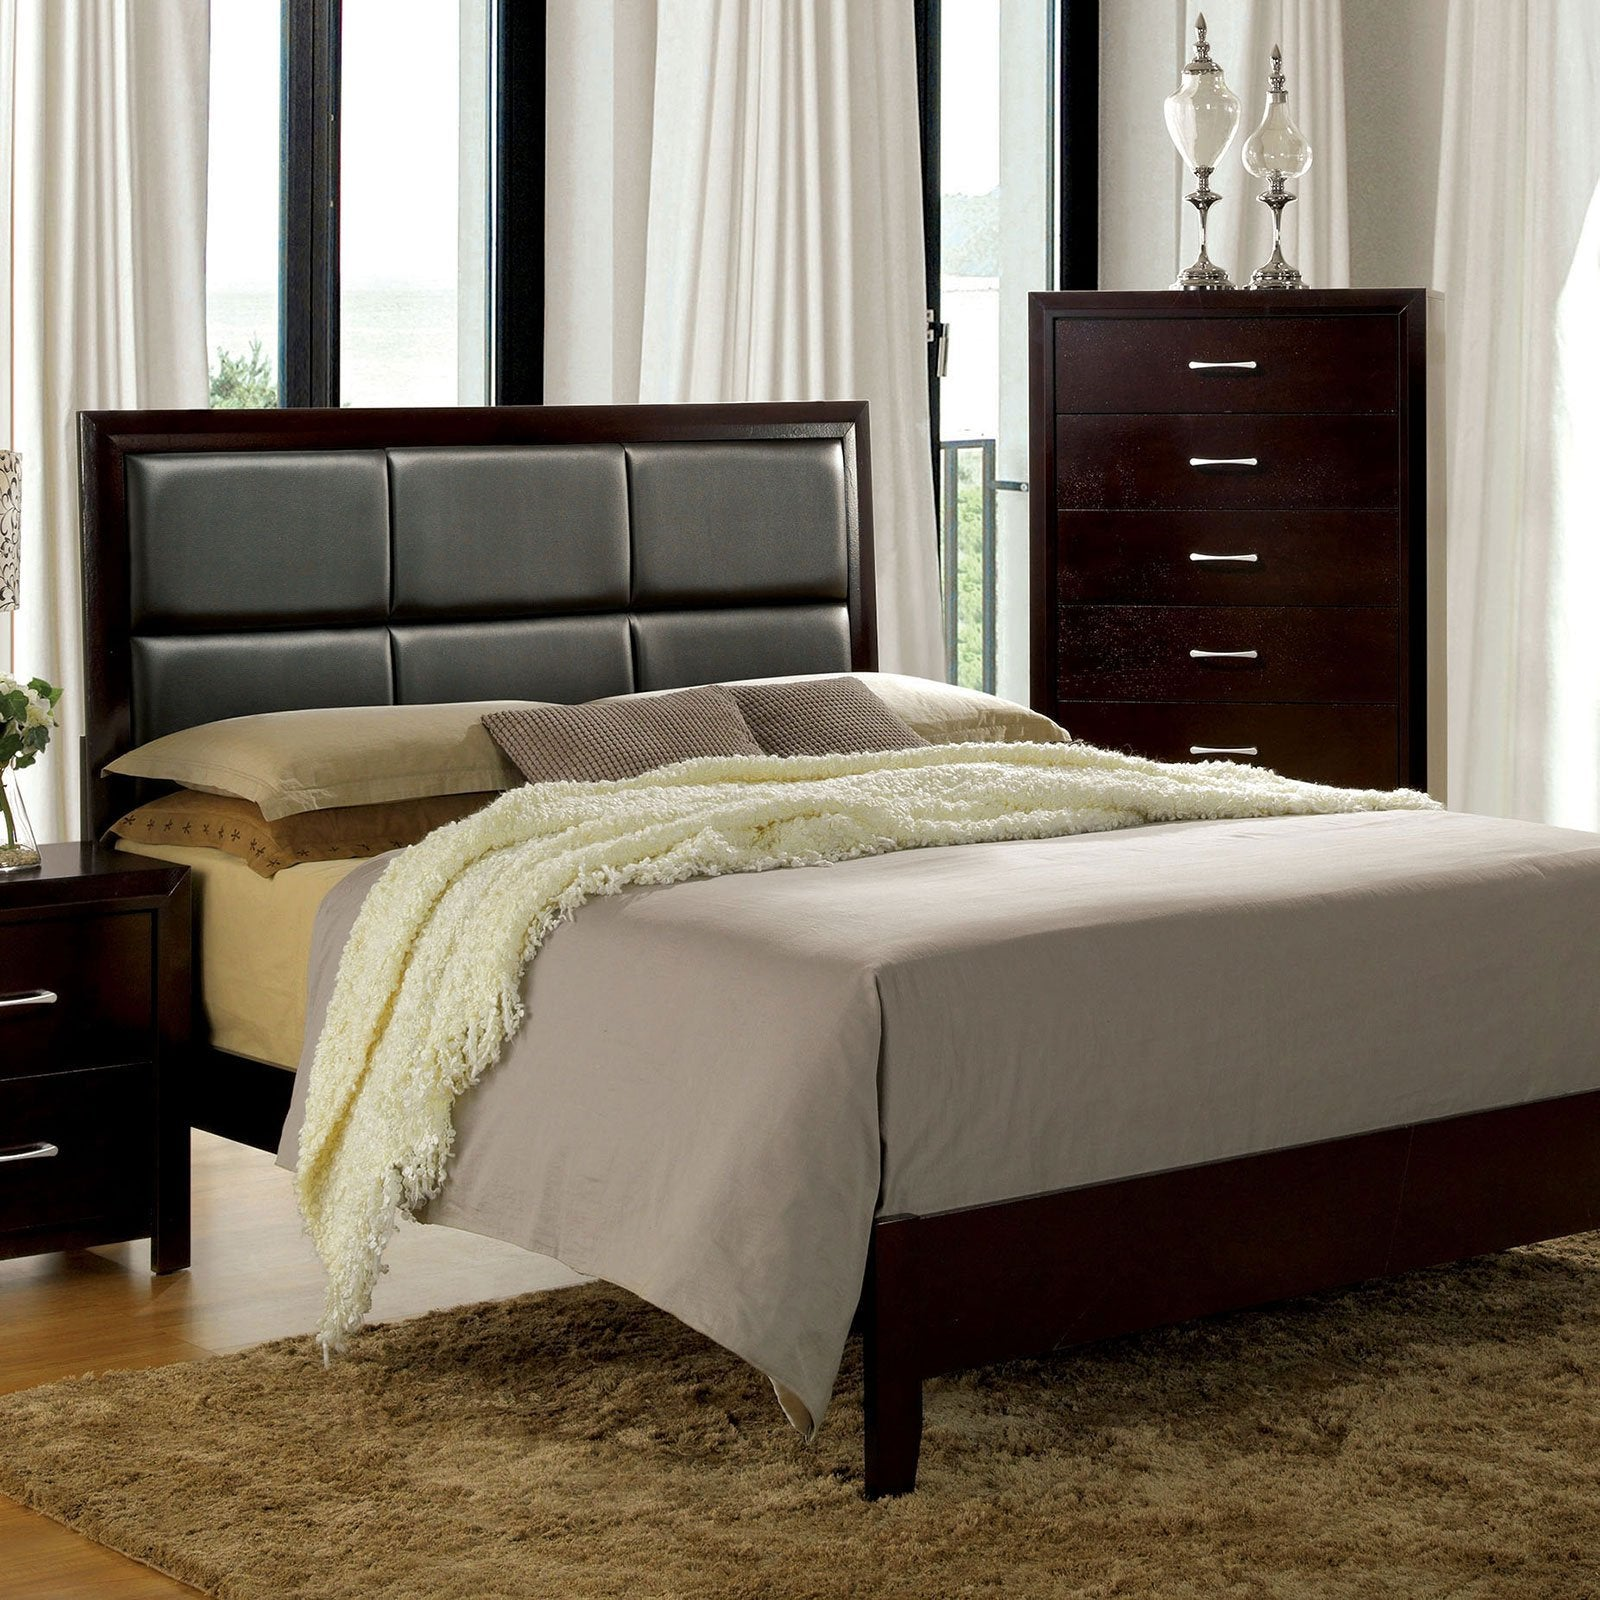 JANINE Contemporary Full Bed - InteriorDesignsToGo.com